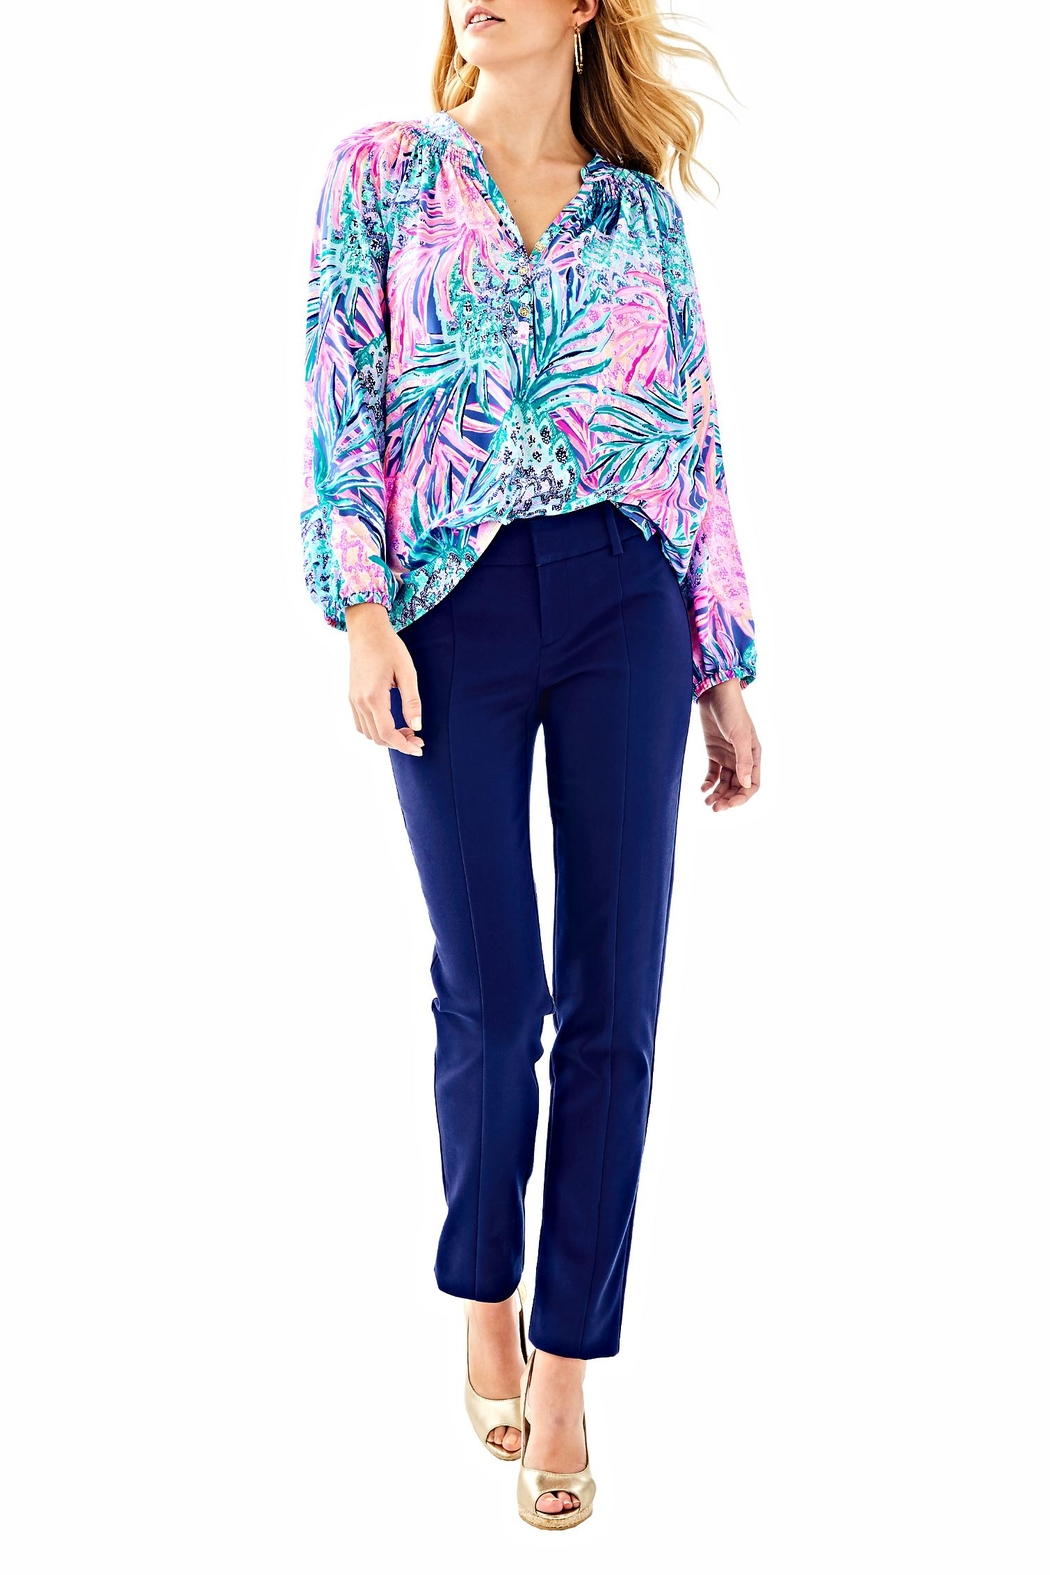 Lilly Pulitzer Chantal Stretch Pant - Back Cropped Image